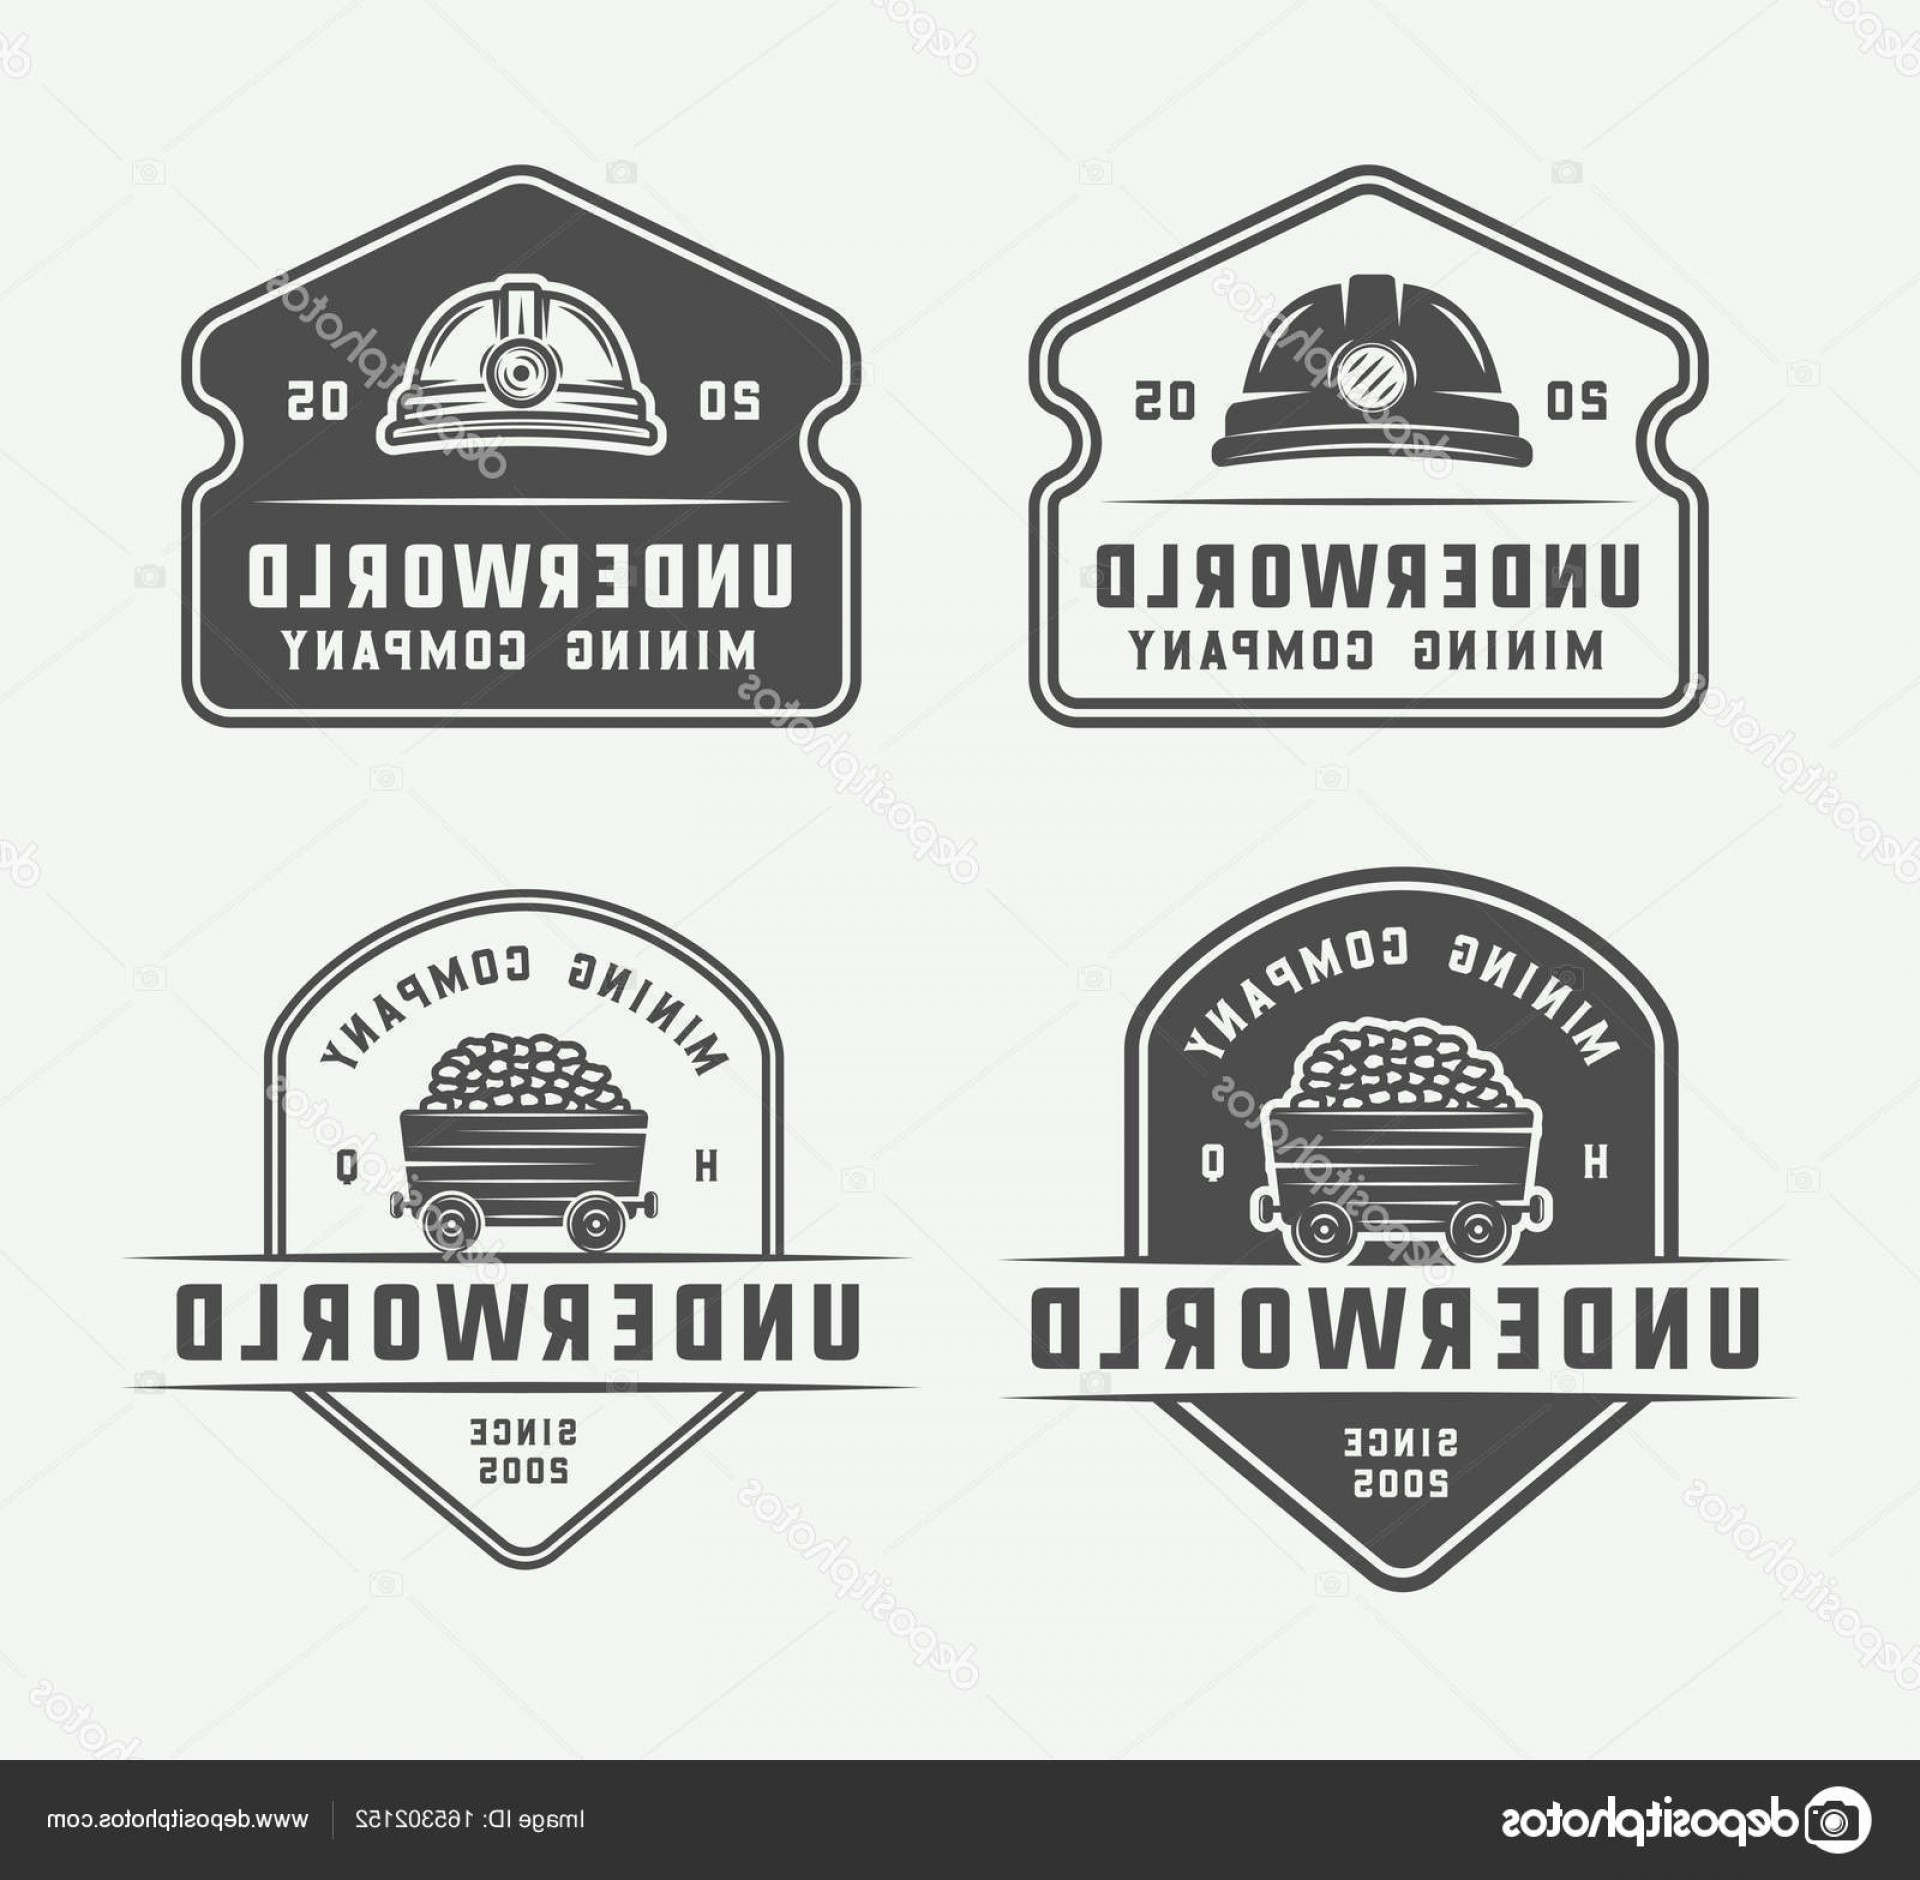 Construction Logos Vector Black And White: Stock Illustration Set Of Retro Mining Or